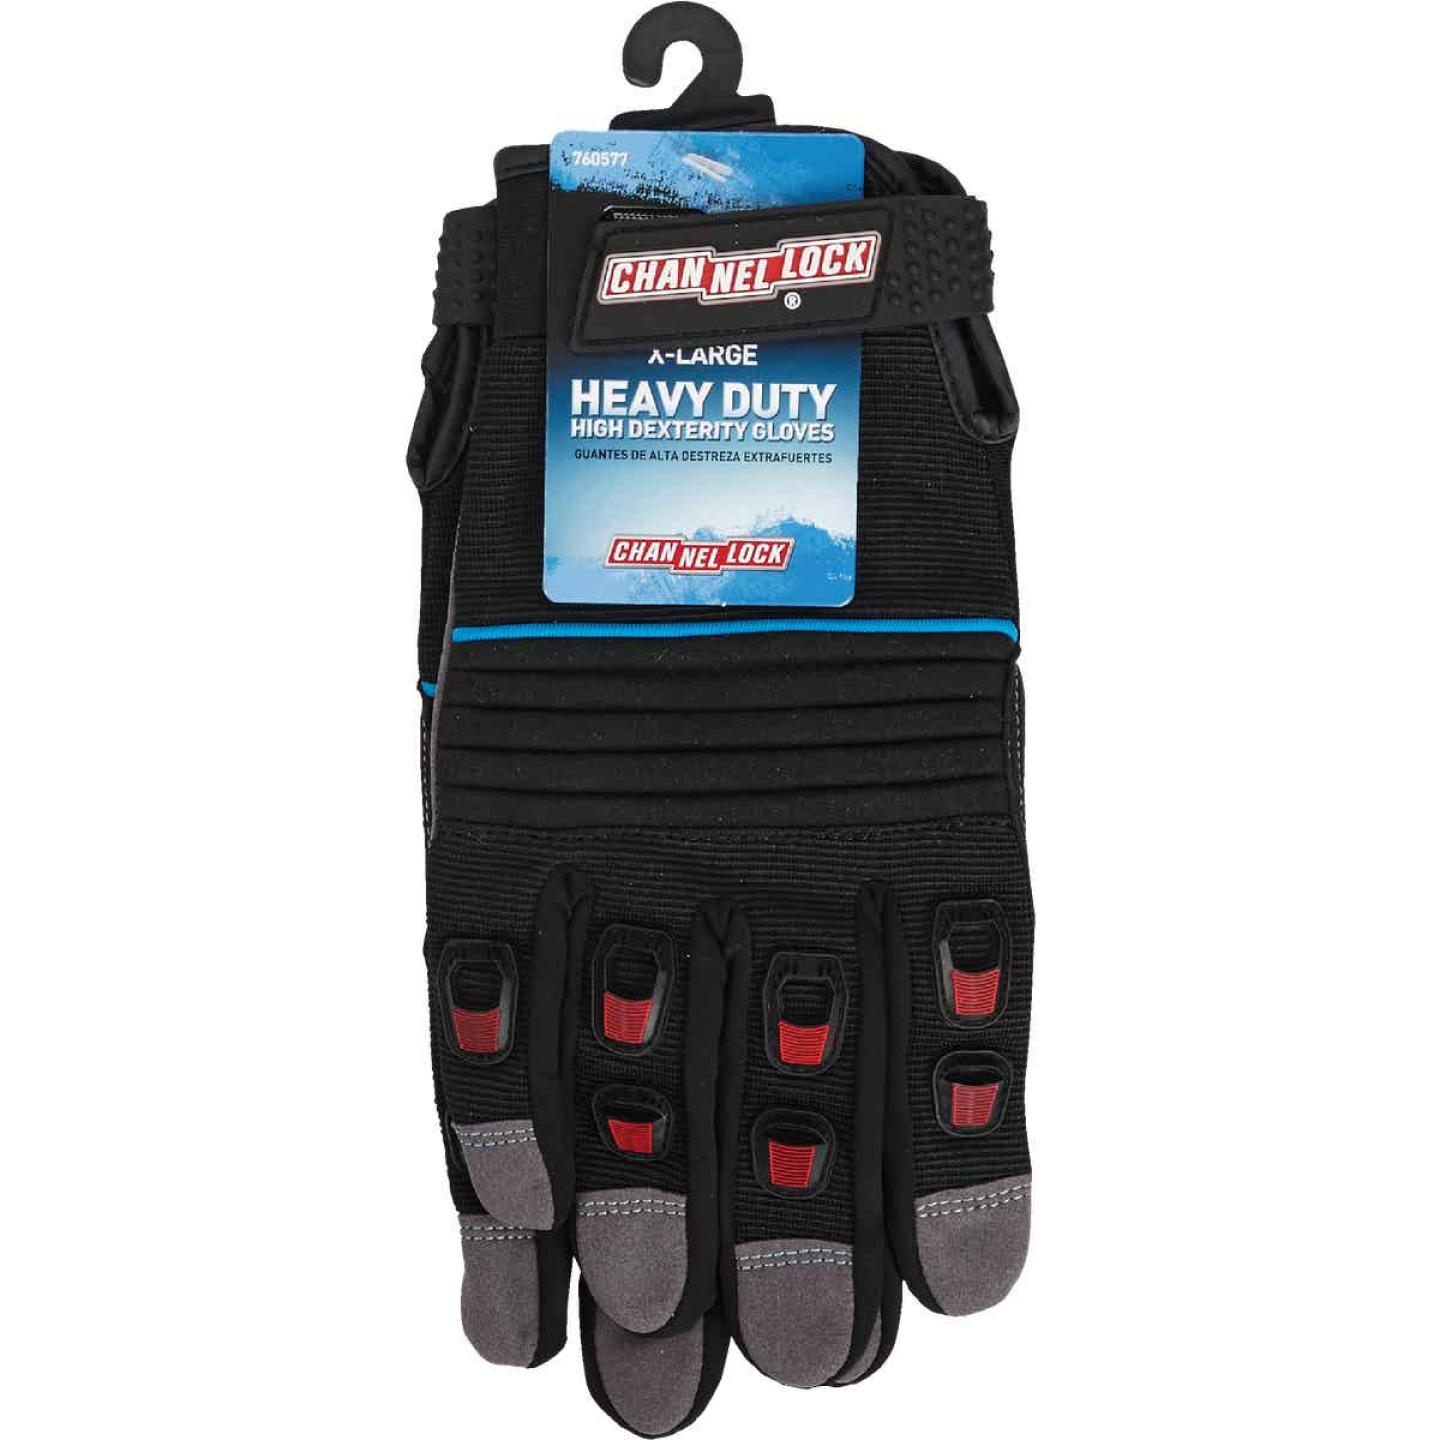 Channellock Men's XL Synthetic Leather Heavy-Duty High Performance Glove Image 2